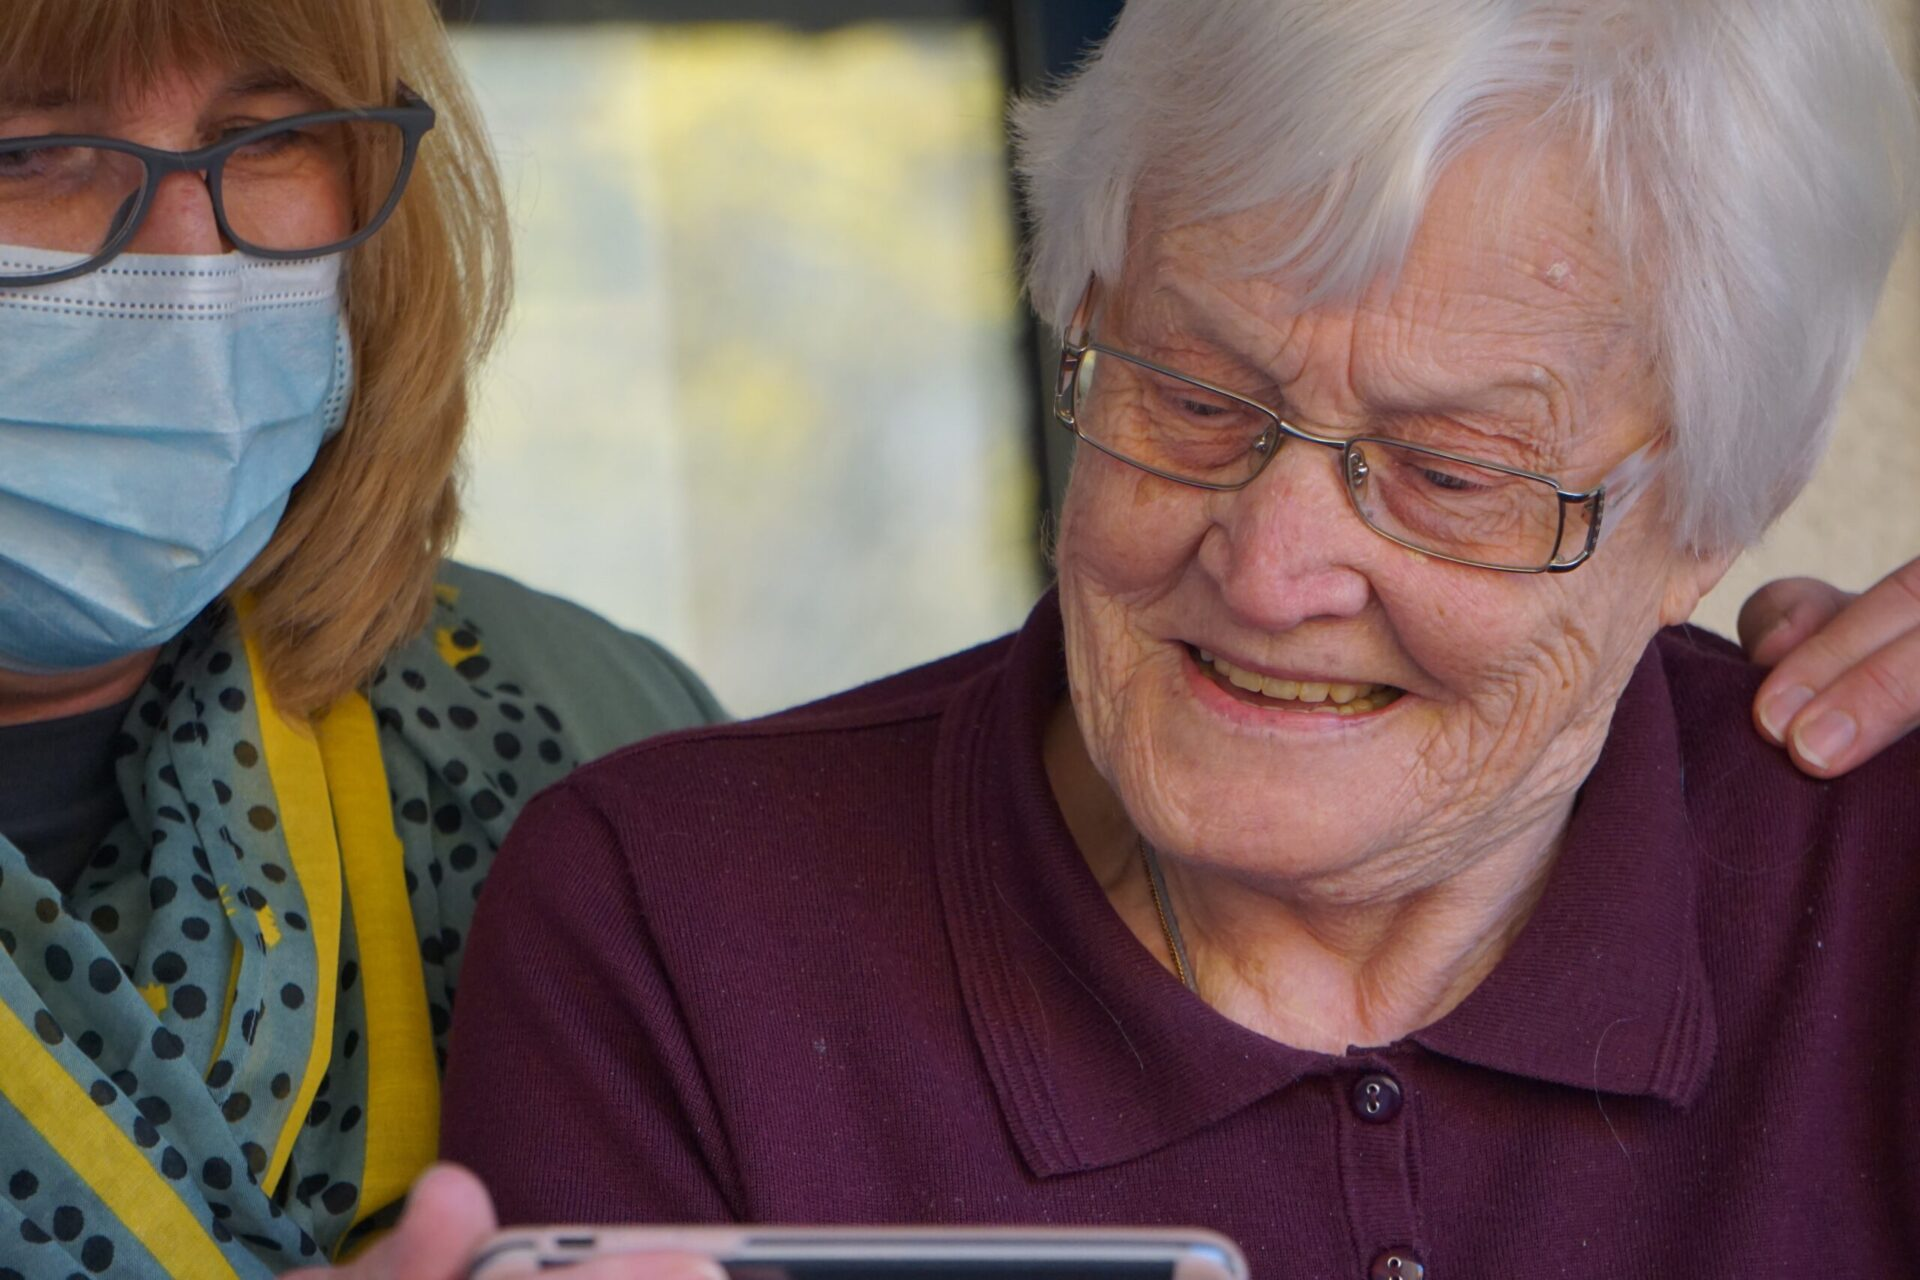 Caregiver wearing mask and elderly woman looking at a phone